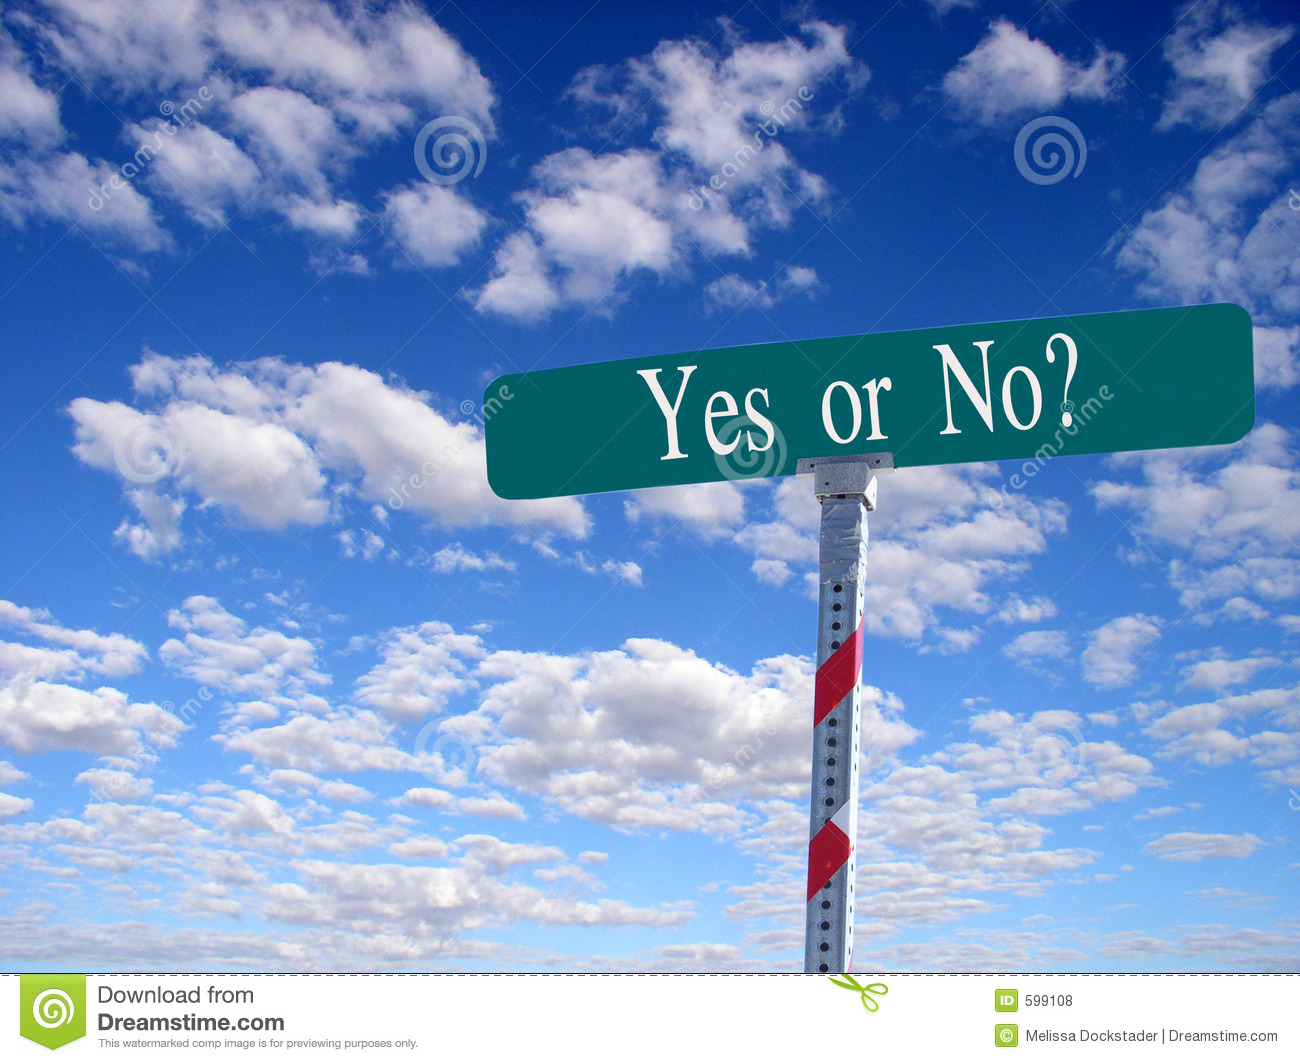 Street Sign Yes Or No Royalty Free Stock Photos - Image: 599108